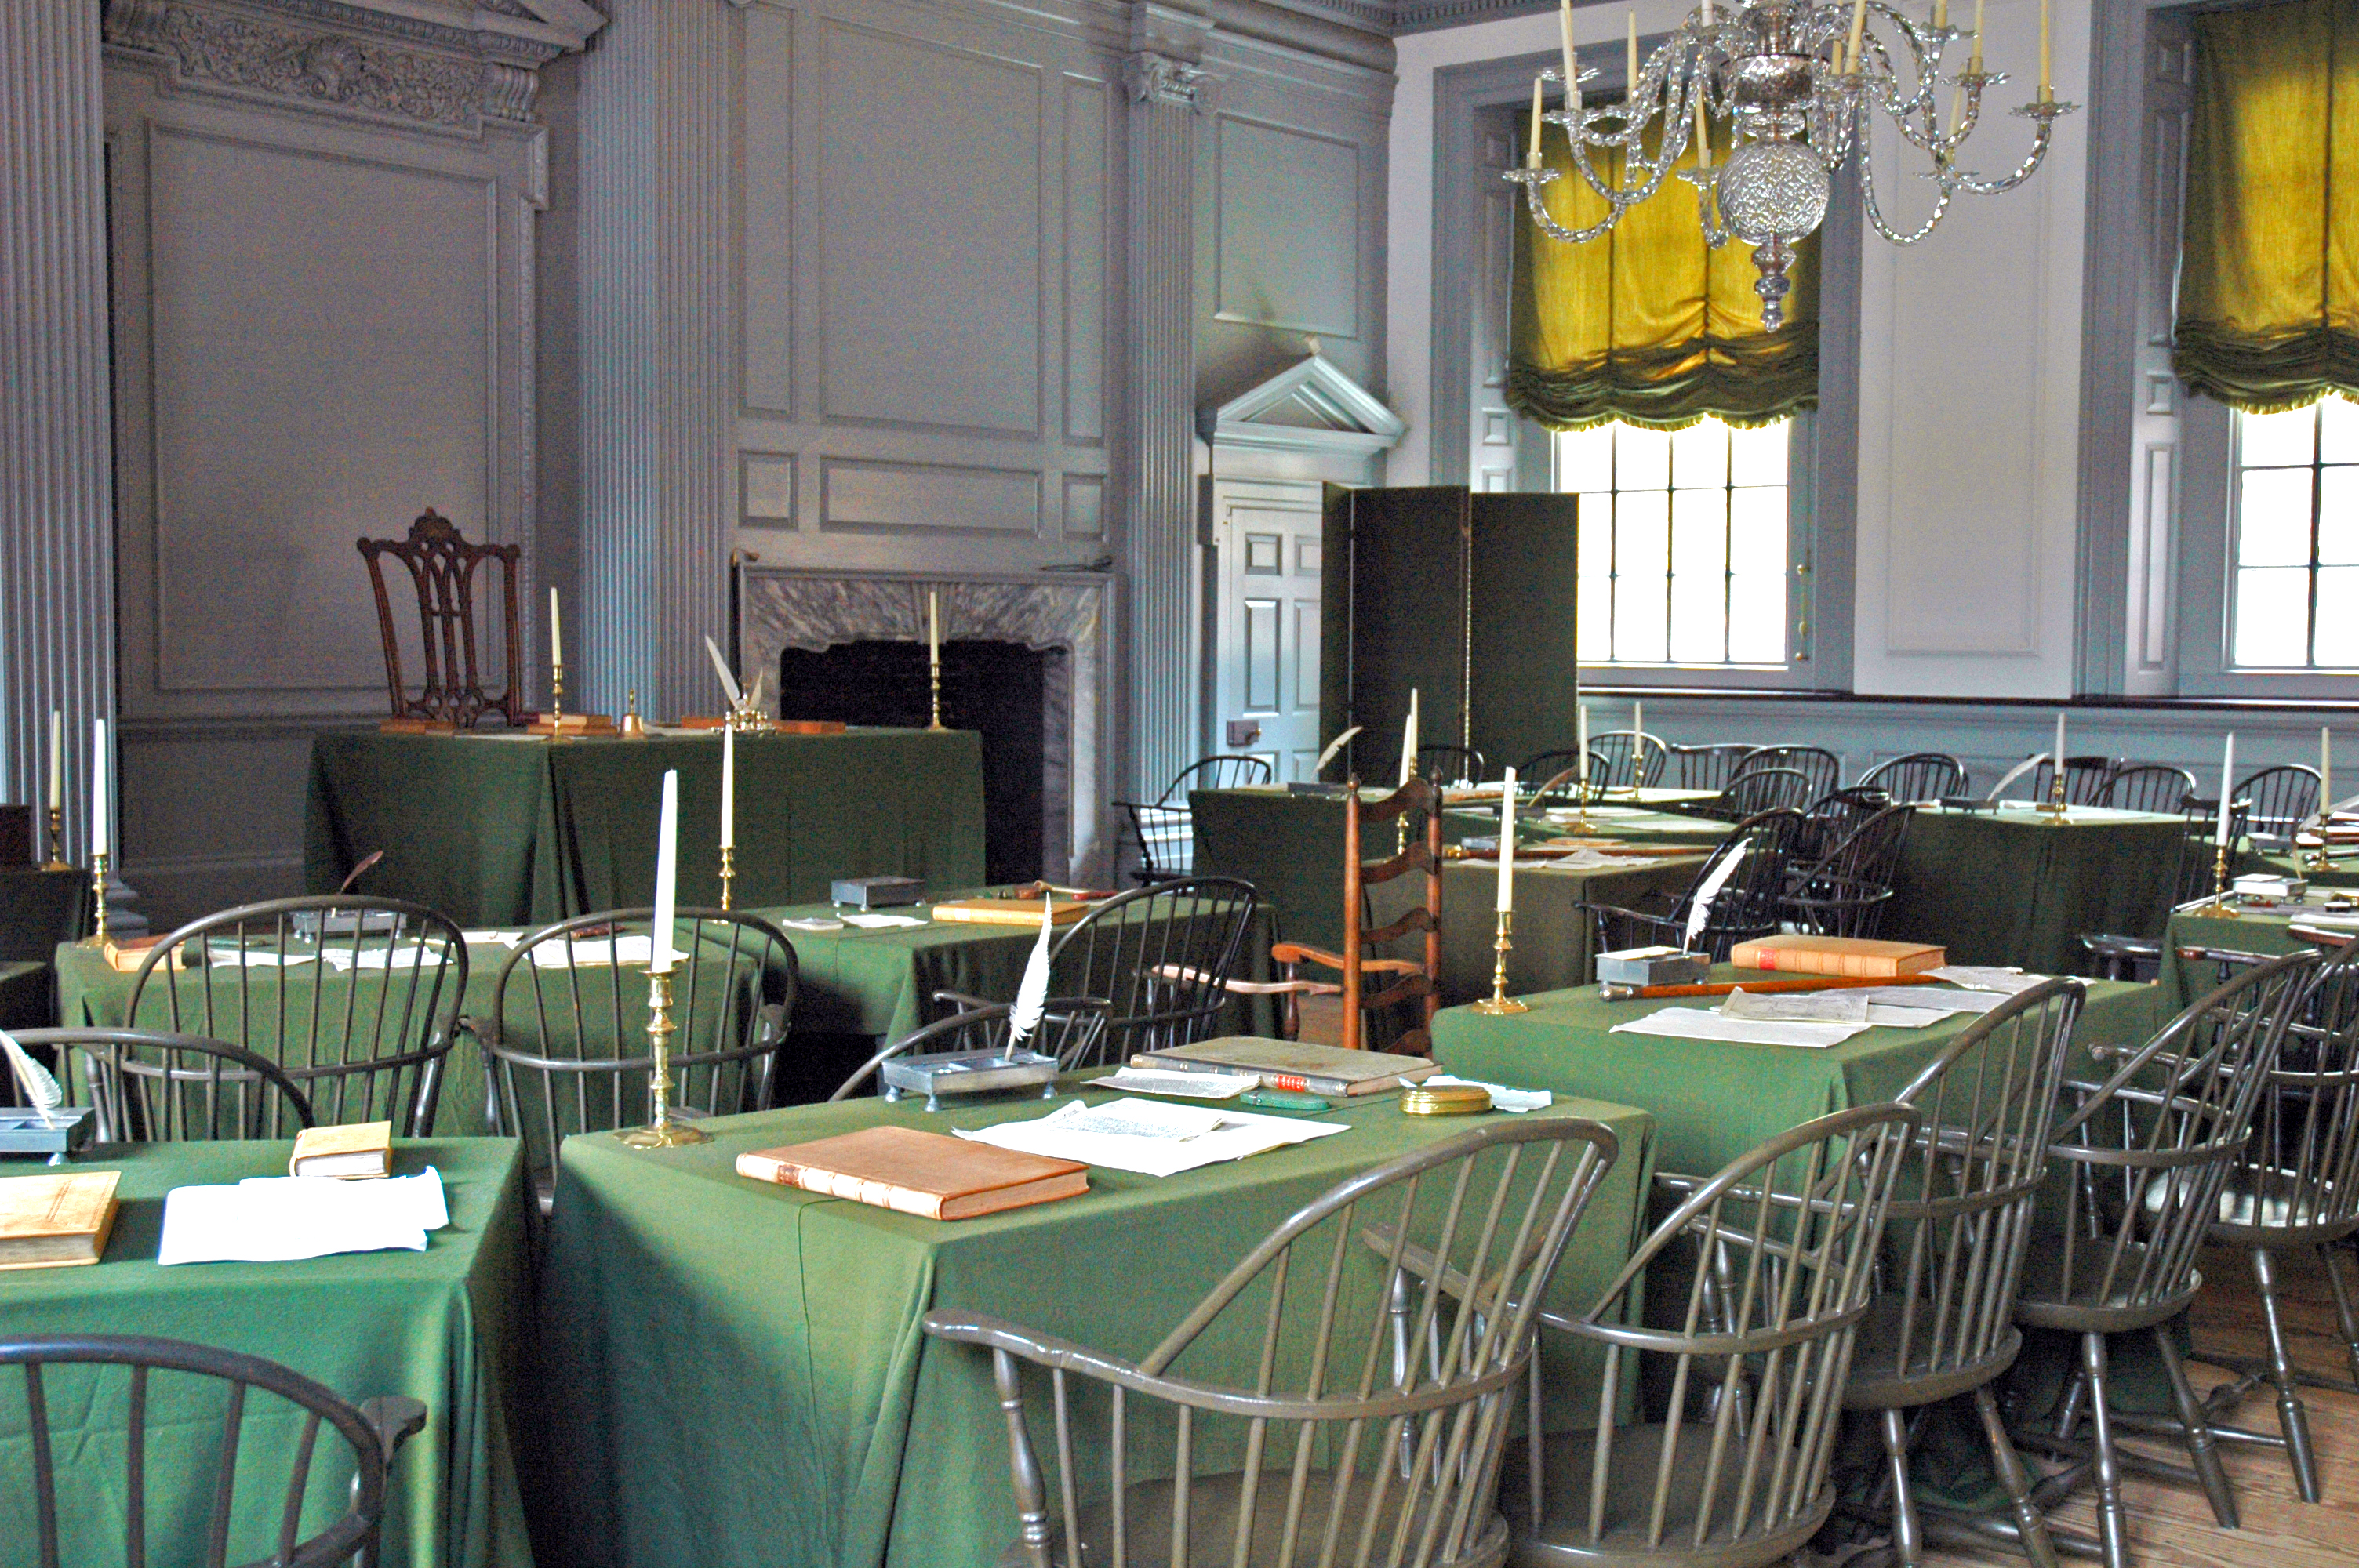 What motivated the continental congress?